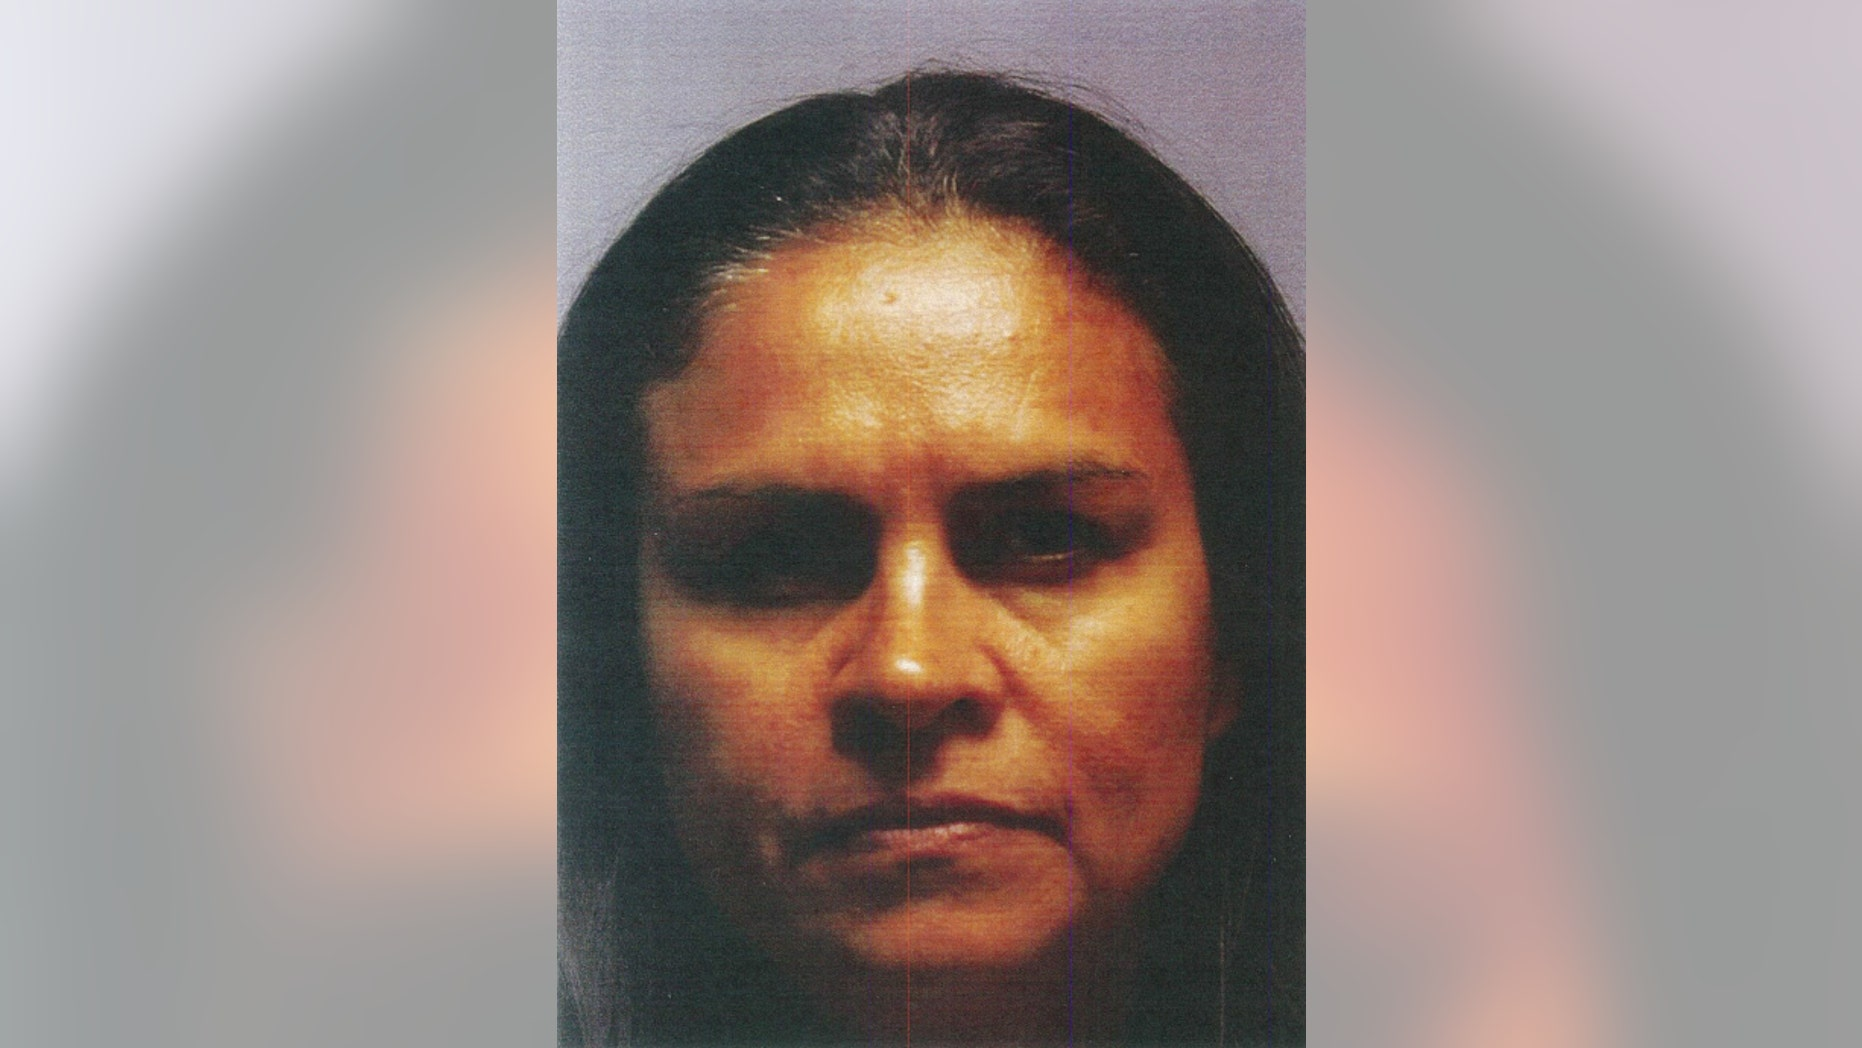 This undated photo provided by the Balch Springs, Texas, Police Department shows Araceli Meza. Meza, who operated a church at her suburban Dallas home, has been arrested for allegedly helping starve a 2-year-old boy to rid him of a demon, then holding a resurrection ceremony shortly after he died to try to revive him, investigators said Tuesday, April 14, 2015. Meza was charged Monday with injury to a child causing serious bodily injury by omission. (Balch Springs Police Department via AP)